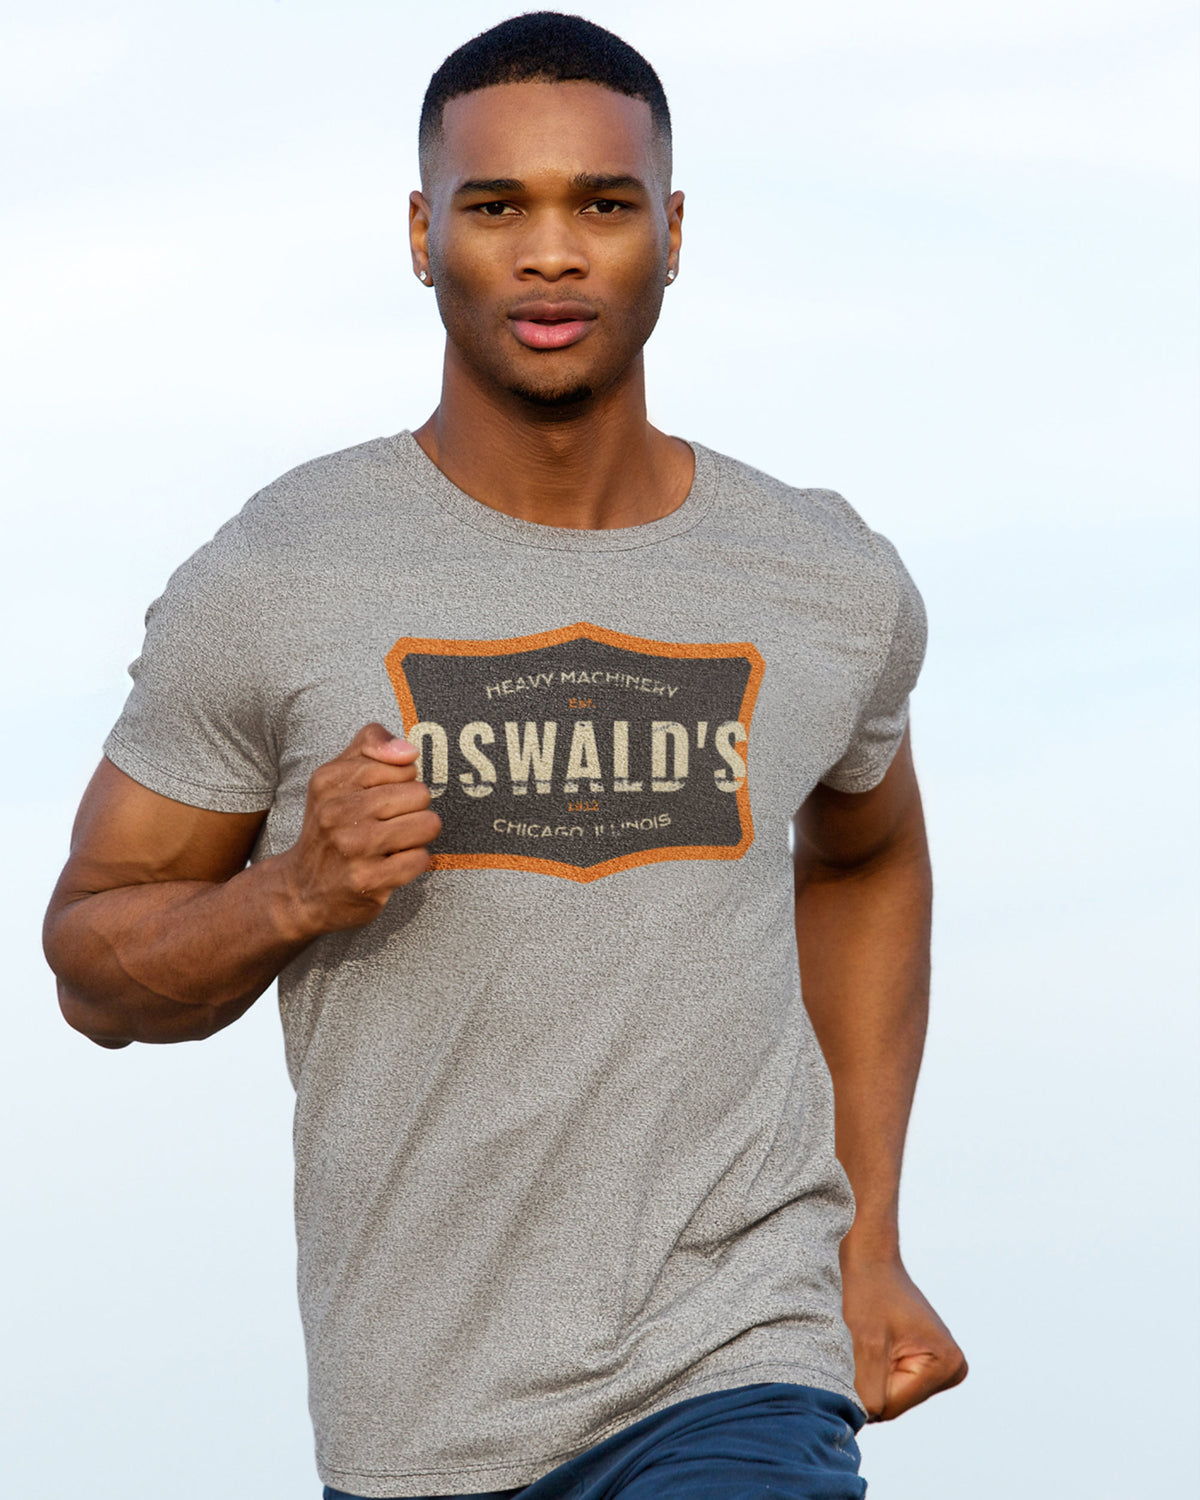 Image of a Young Man Running Wearing a Custom Printed Heather Grey T-Shirt